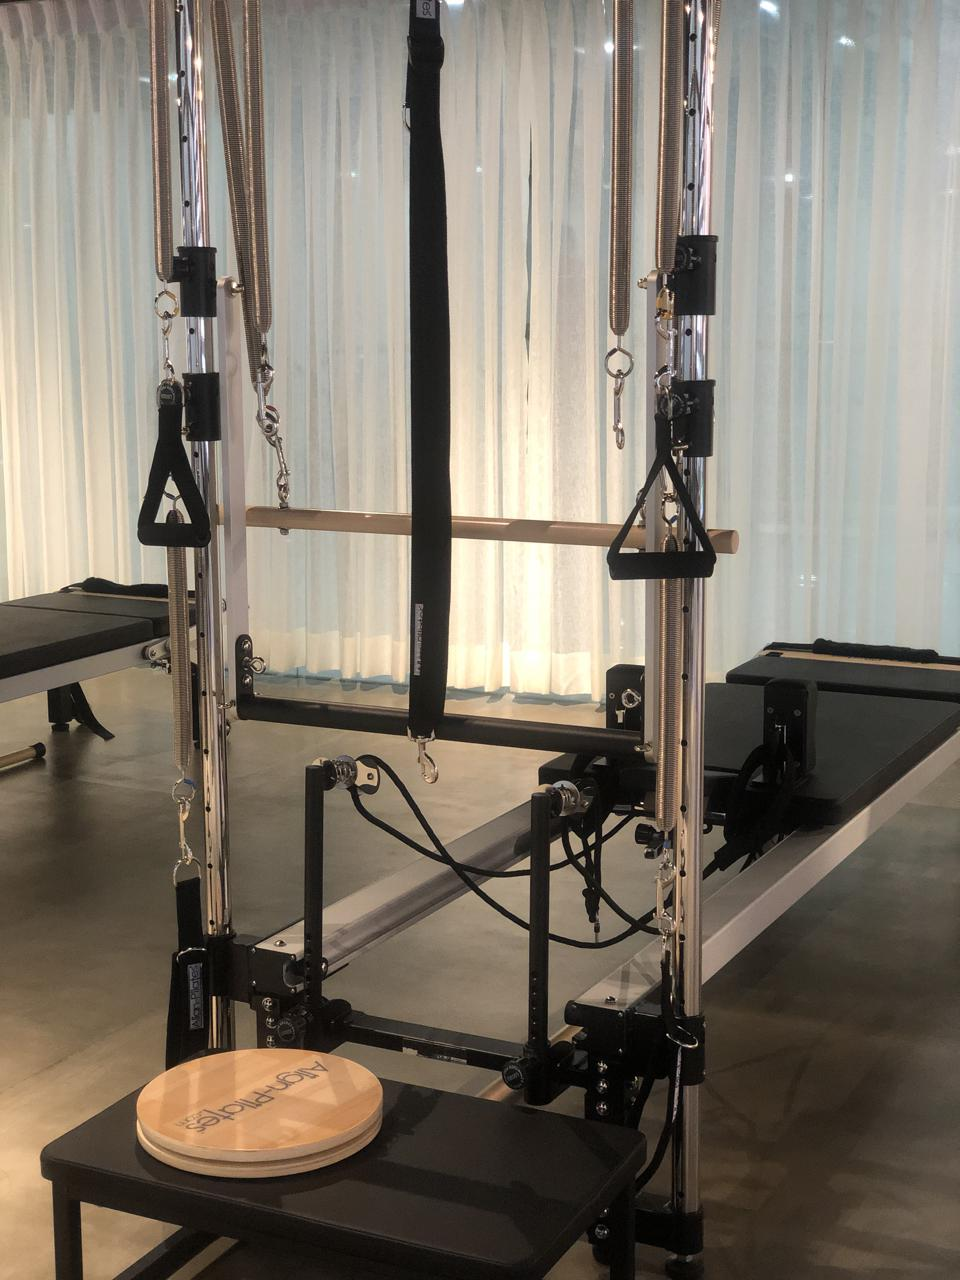 Spring bars, adjustment knobs, silent pulleys and symmetric tensioners are details that enhance Pilates workouts at Fit To Live.